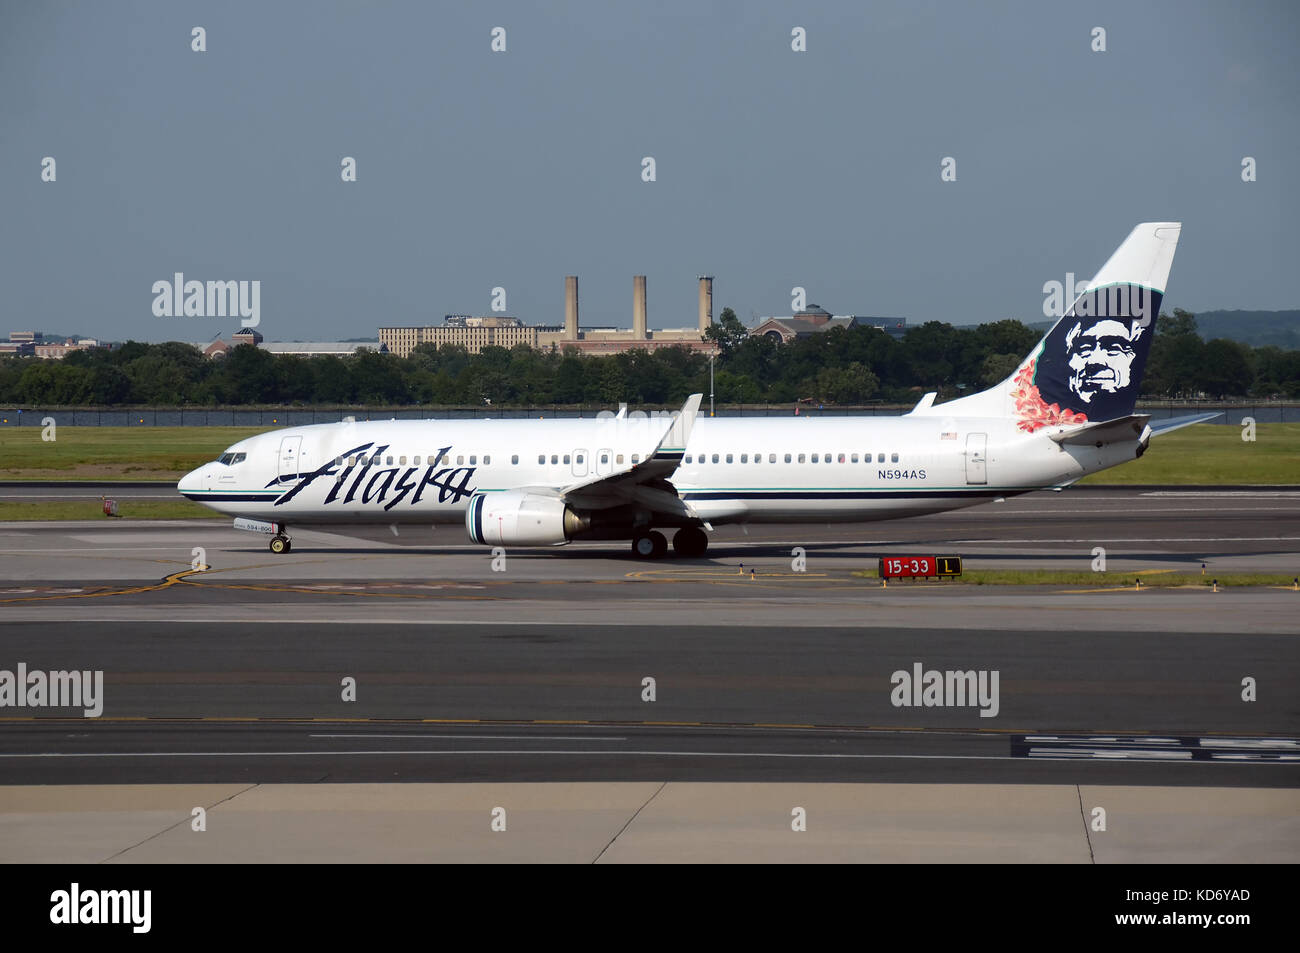 Alaska airlines stock photos alaska airlines stock images alamy washington dc usa may 30 2013 alaska airlines boeing 737 jet arrives buycottarizona Choice Image